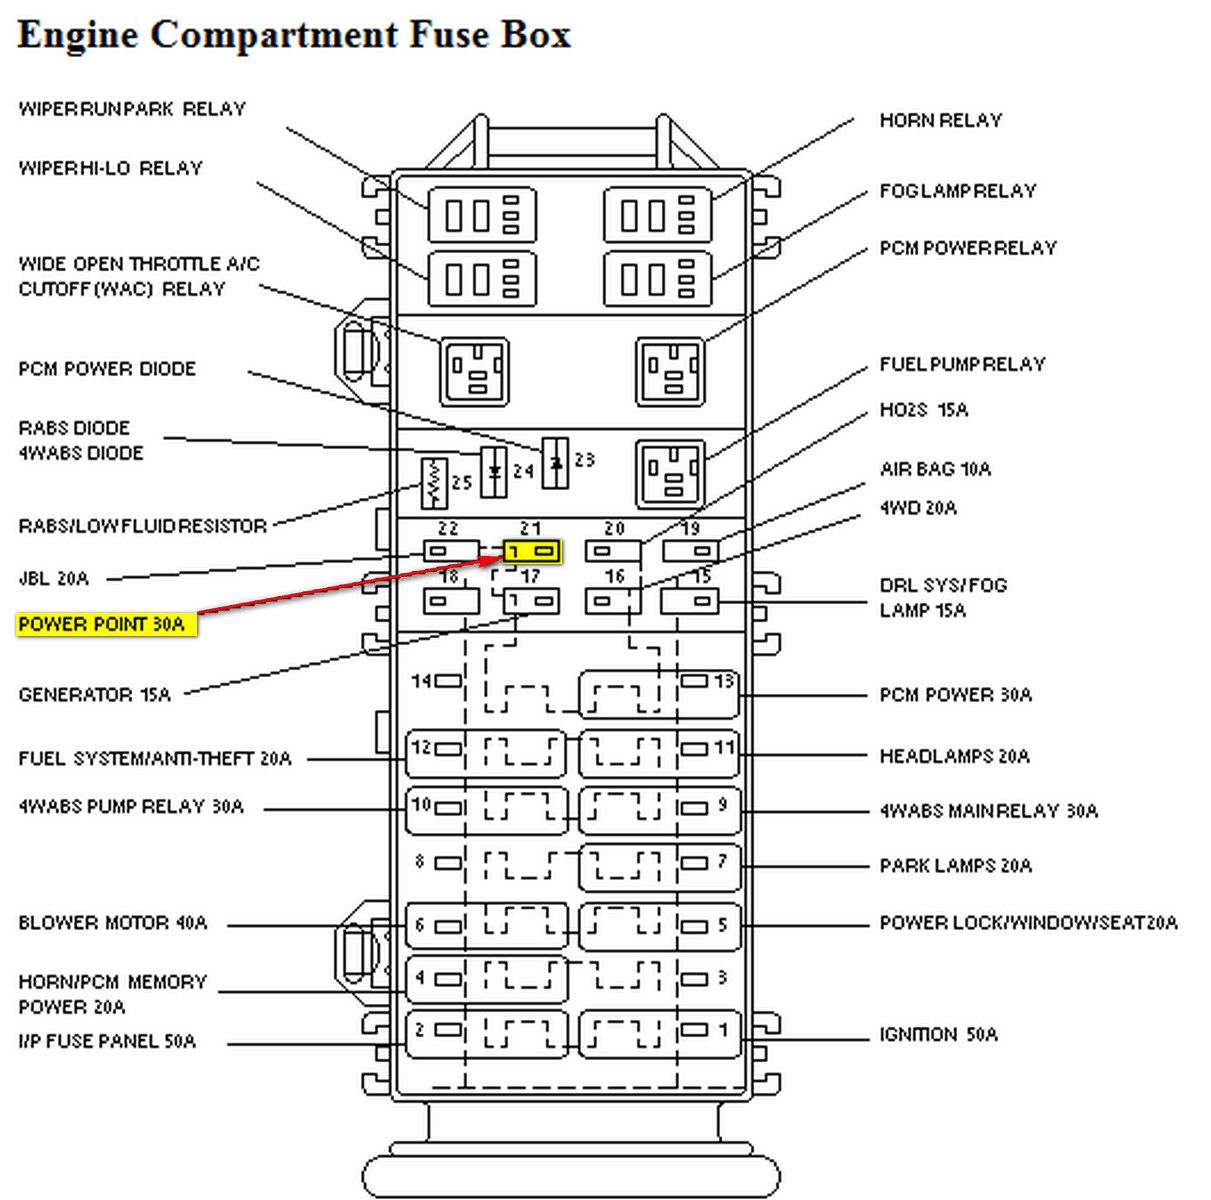 8a55967da7ae1bd251b795845886bd24 2002 ford ranger fuse diagram 1997 ford ranger fuse box diagram 2012 ford edge fuse box diagram at virtualis.co